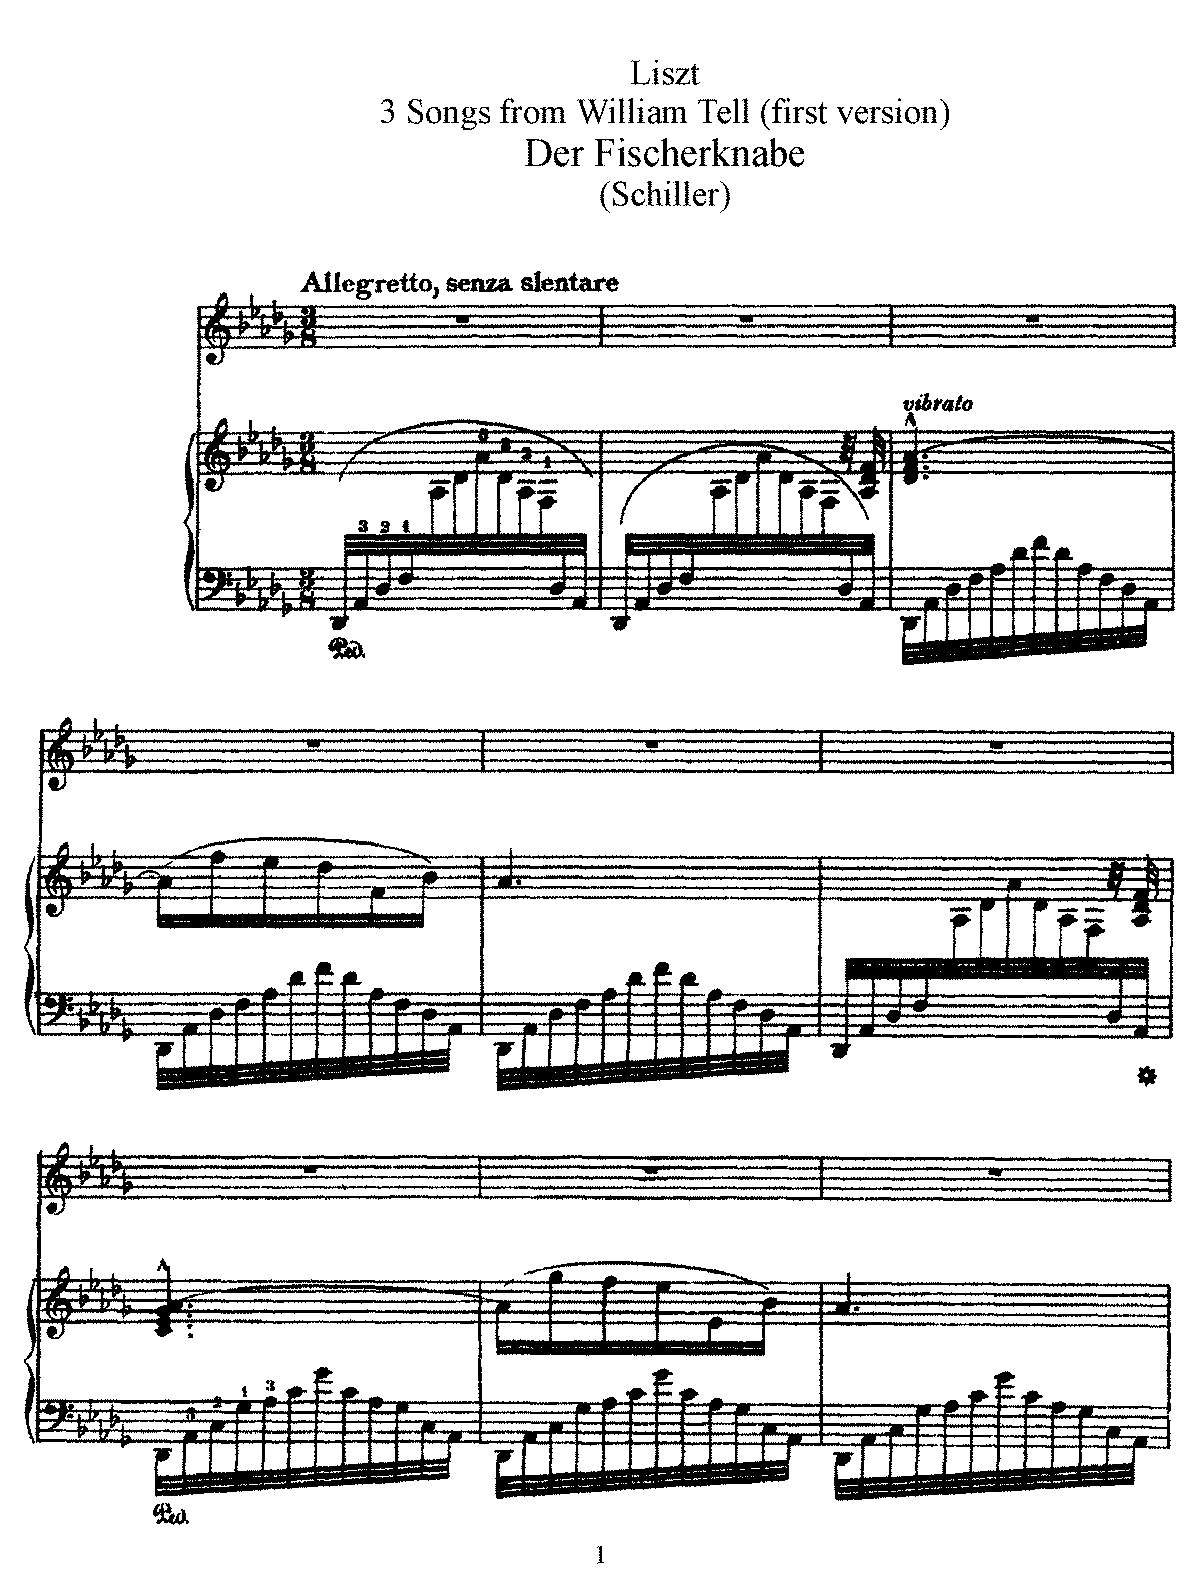 Liszt - S292 Songs from Schiller's Wilhelm Tell 1st version.pdf